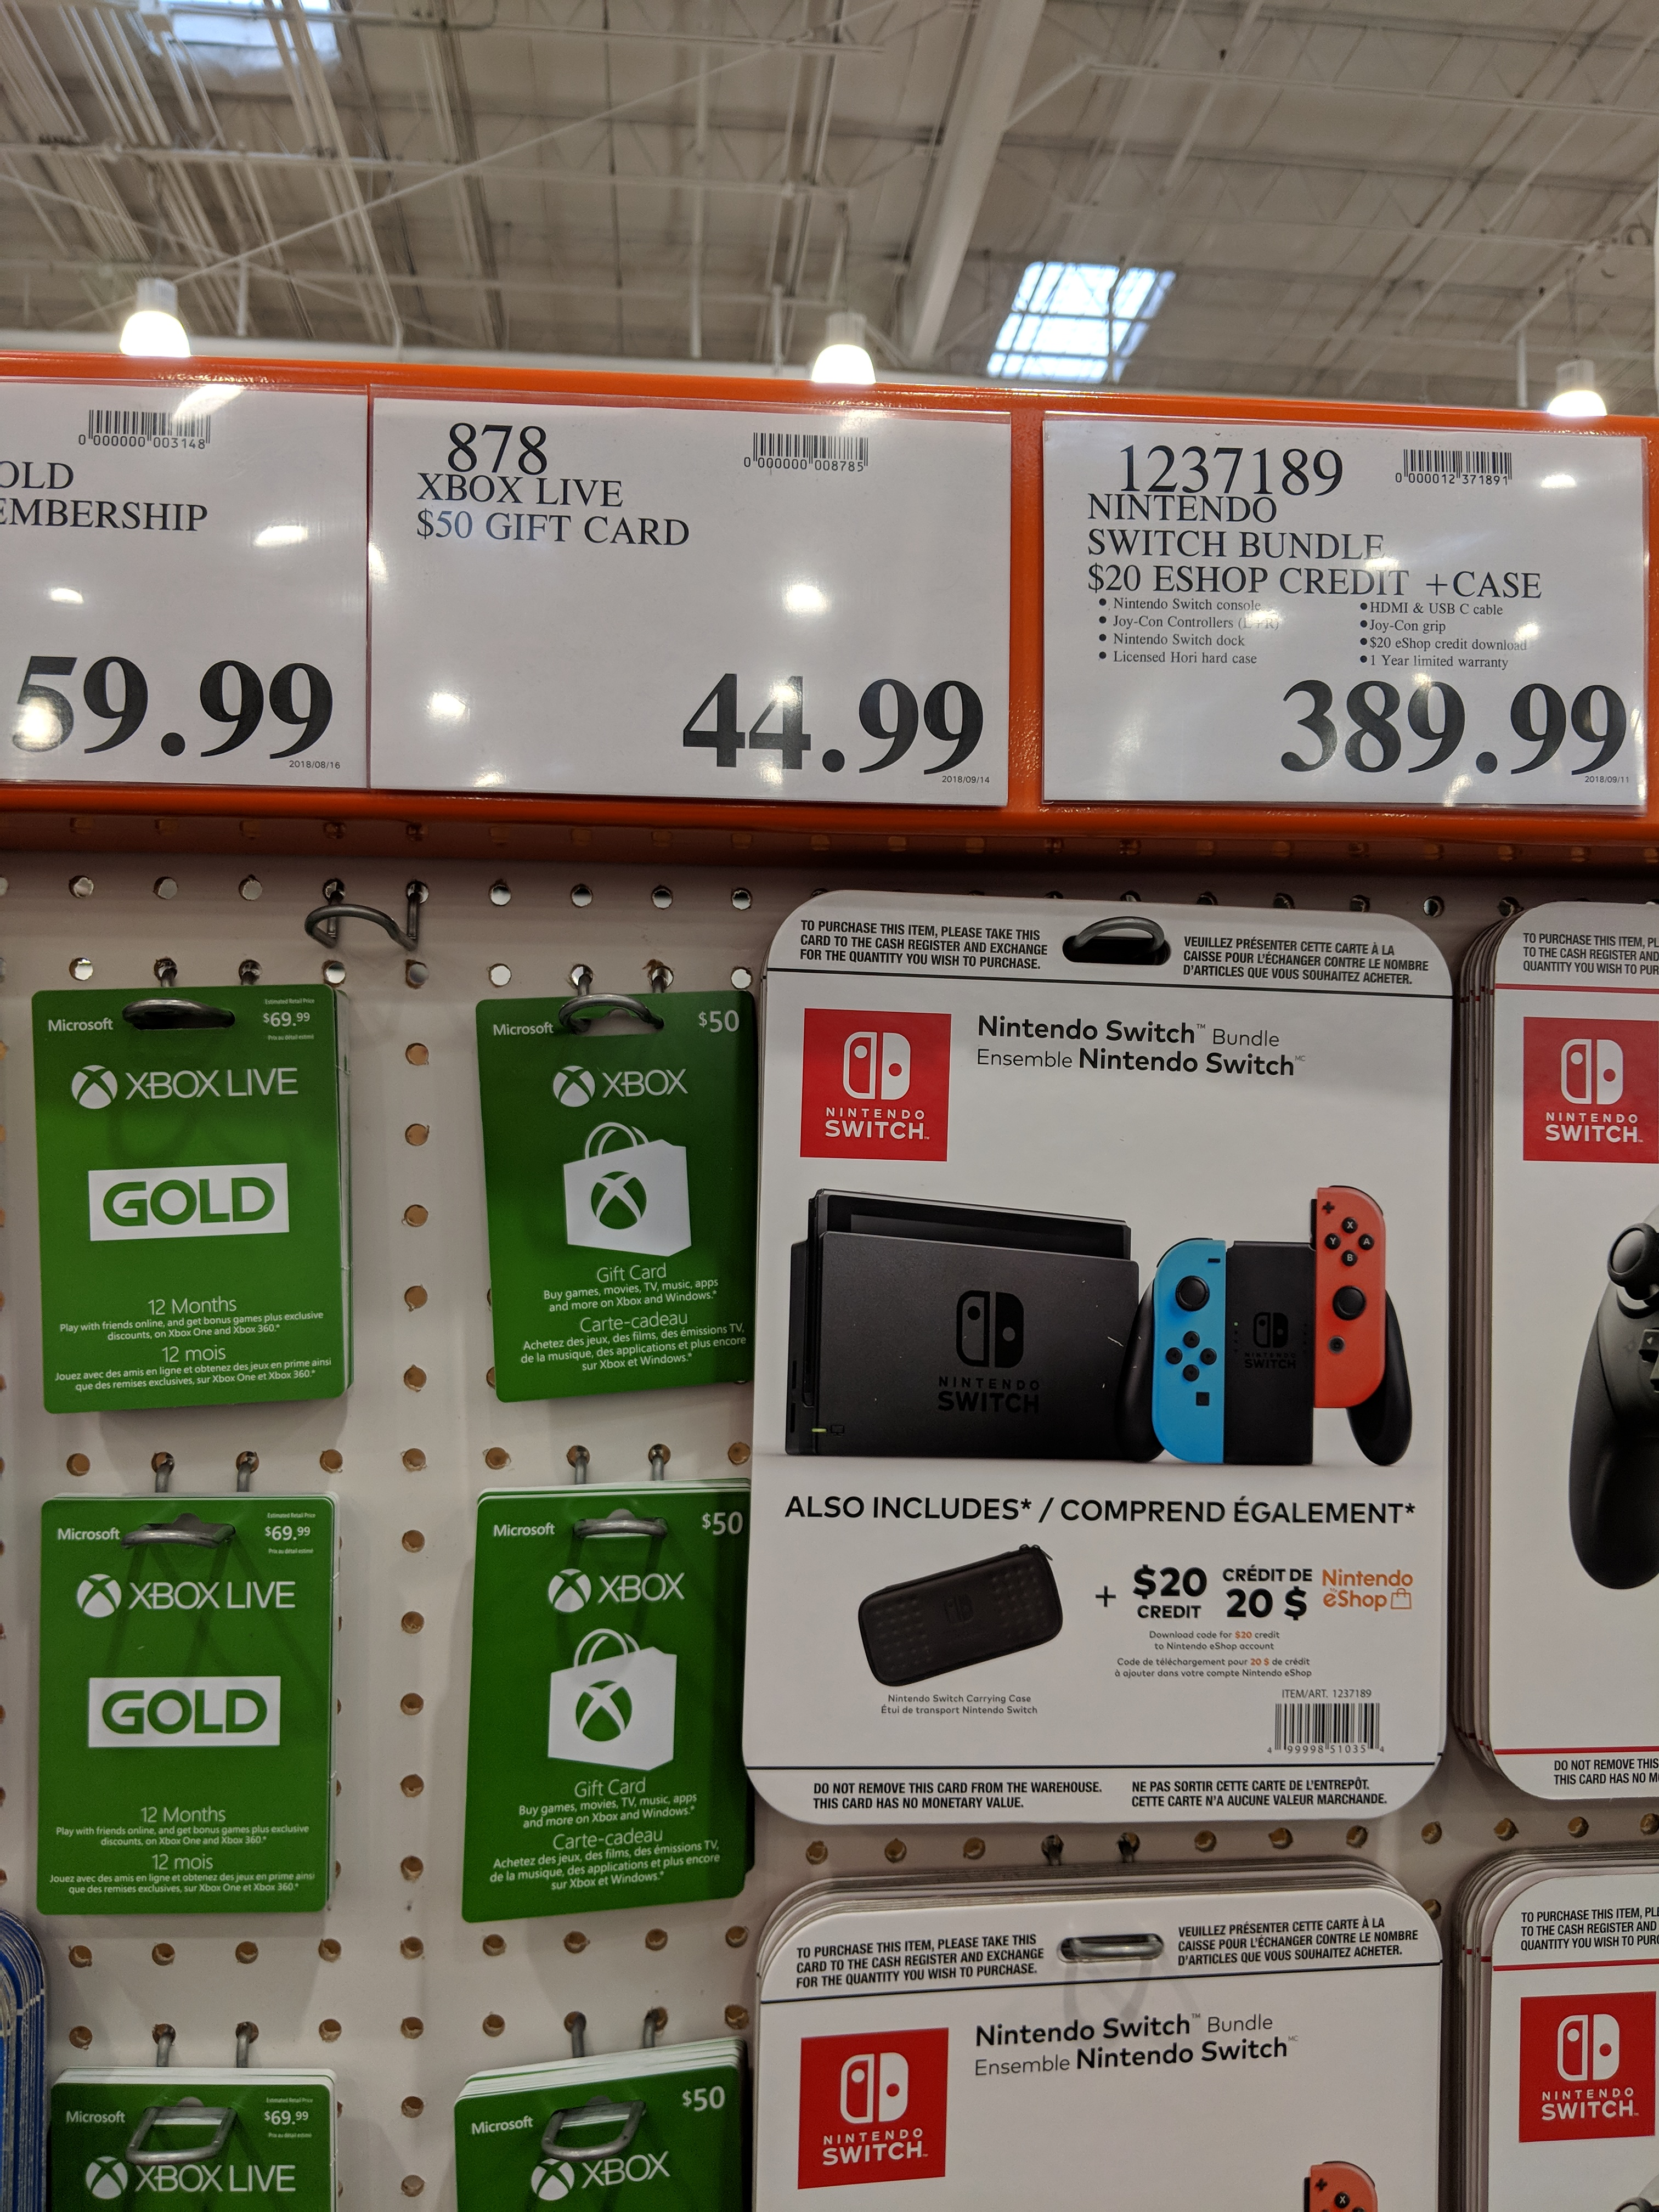 Nintendo Switch Costco In Store Cheaper Than Retail Price Buy Clothing Accessories And Lifestyle Products For Women Men Learn more about our range of nintendo switch games. hlc edu in